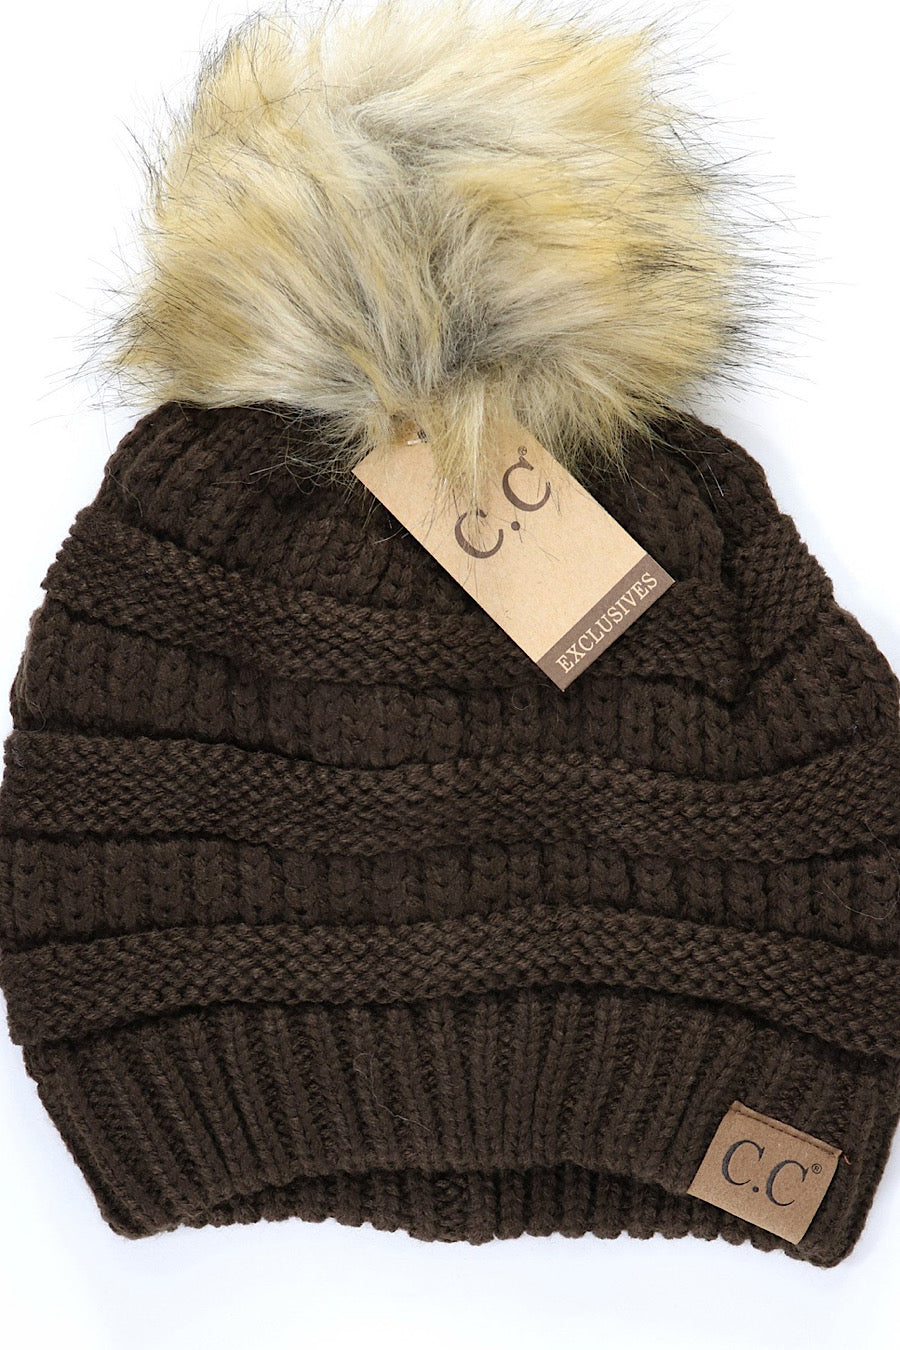 CC Fur Pom Pom Beanie! Available in Black, Brown, Grey, Olive